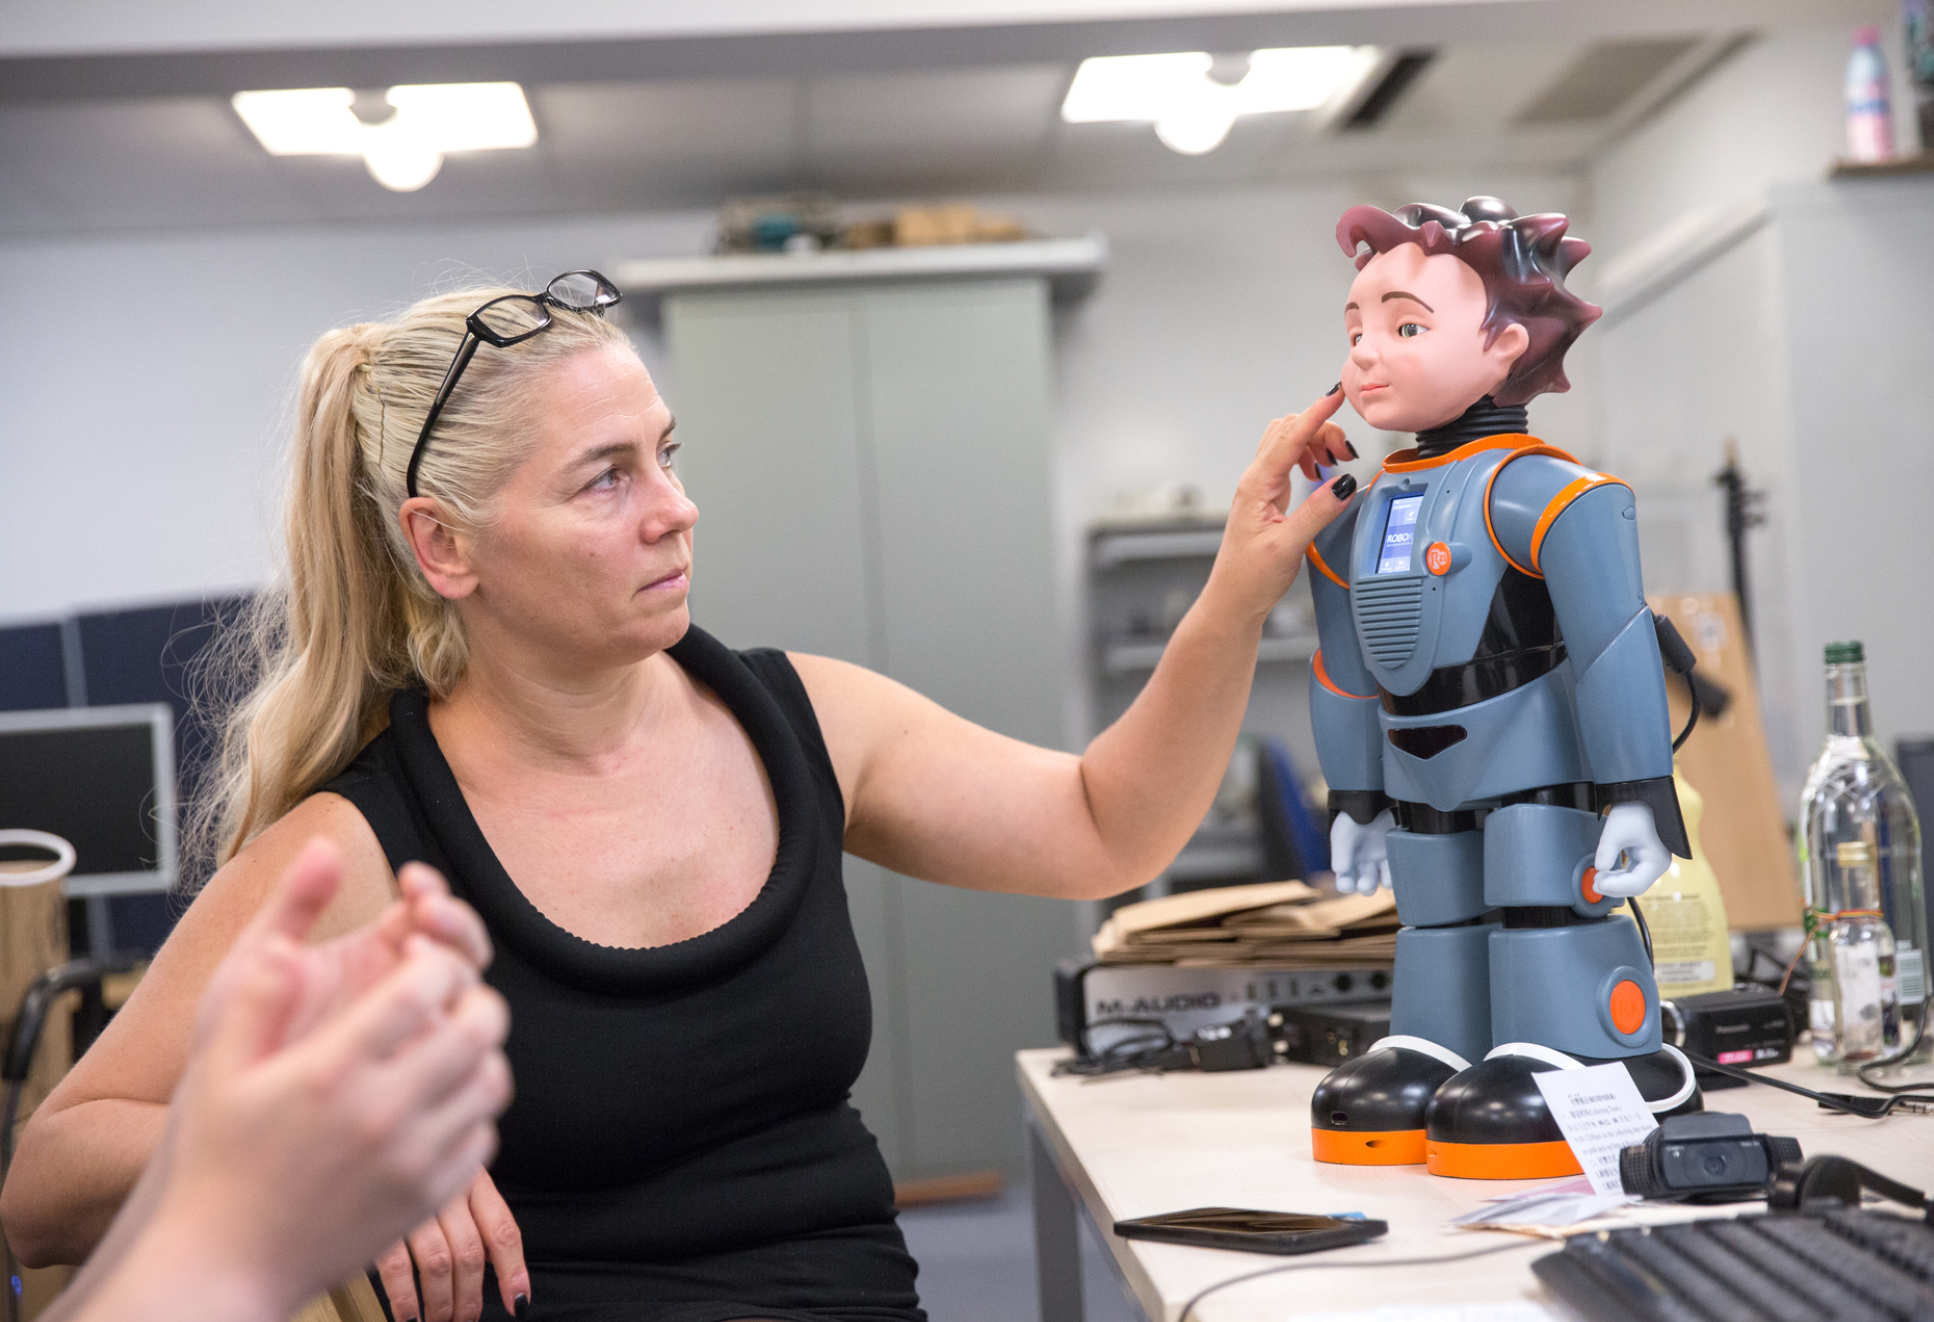 Professor Maja Pantic points at her robot